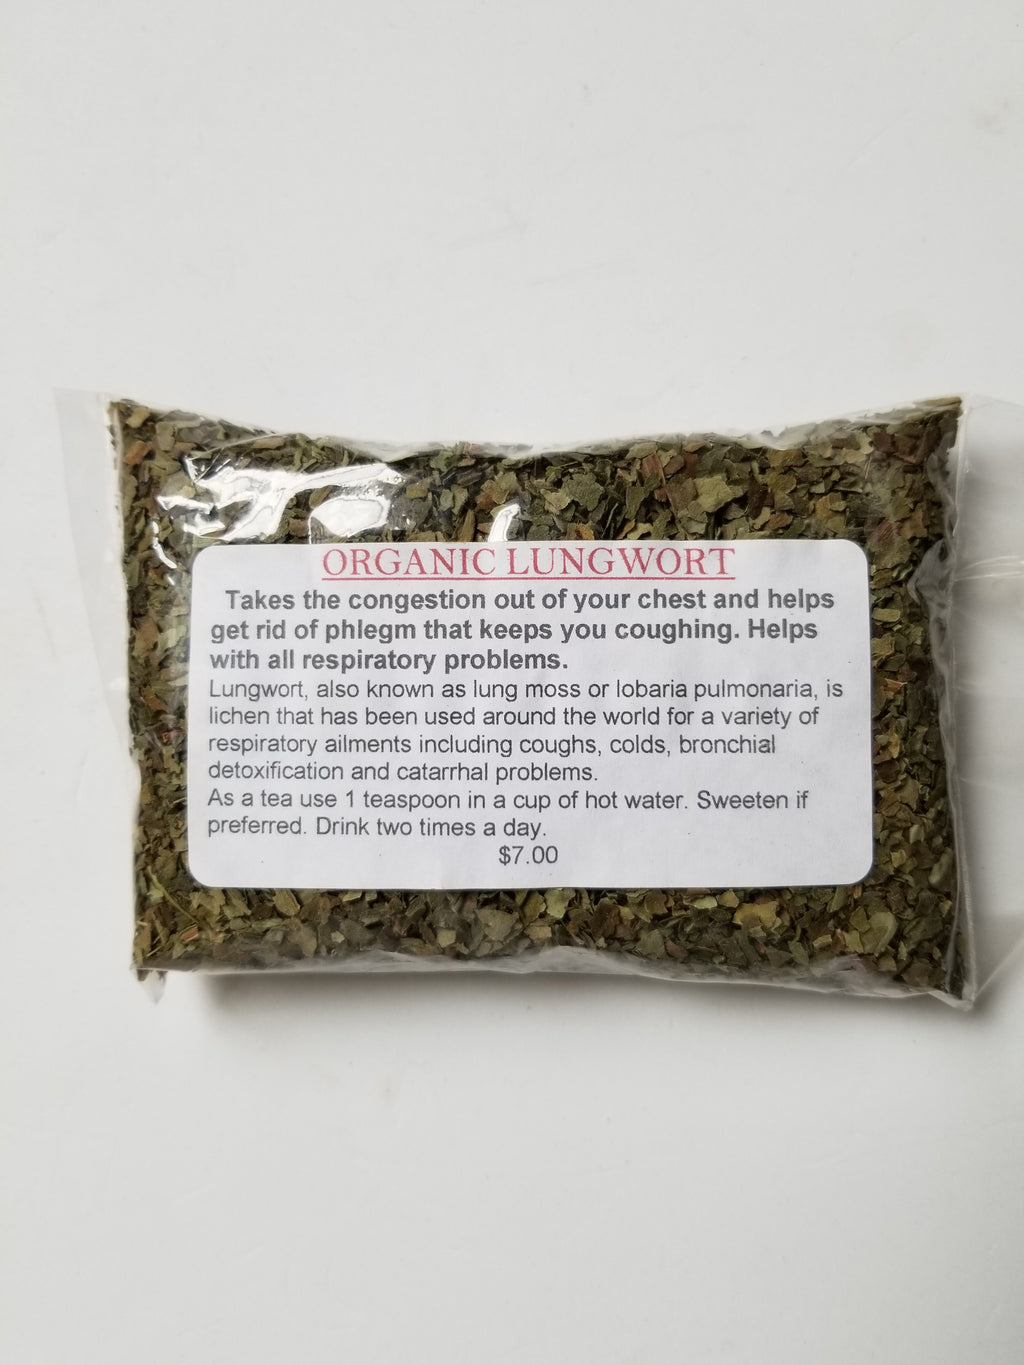 Lungwort (Organic) Bronchial Tea